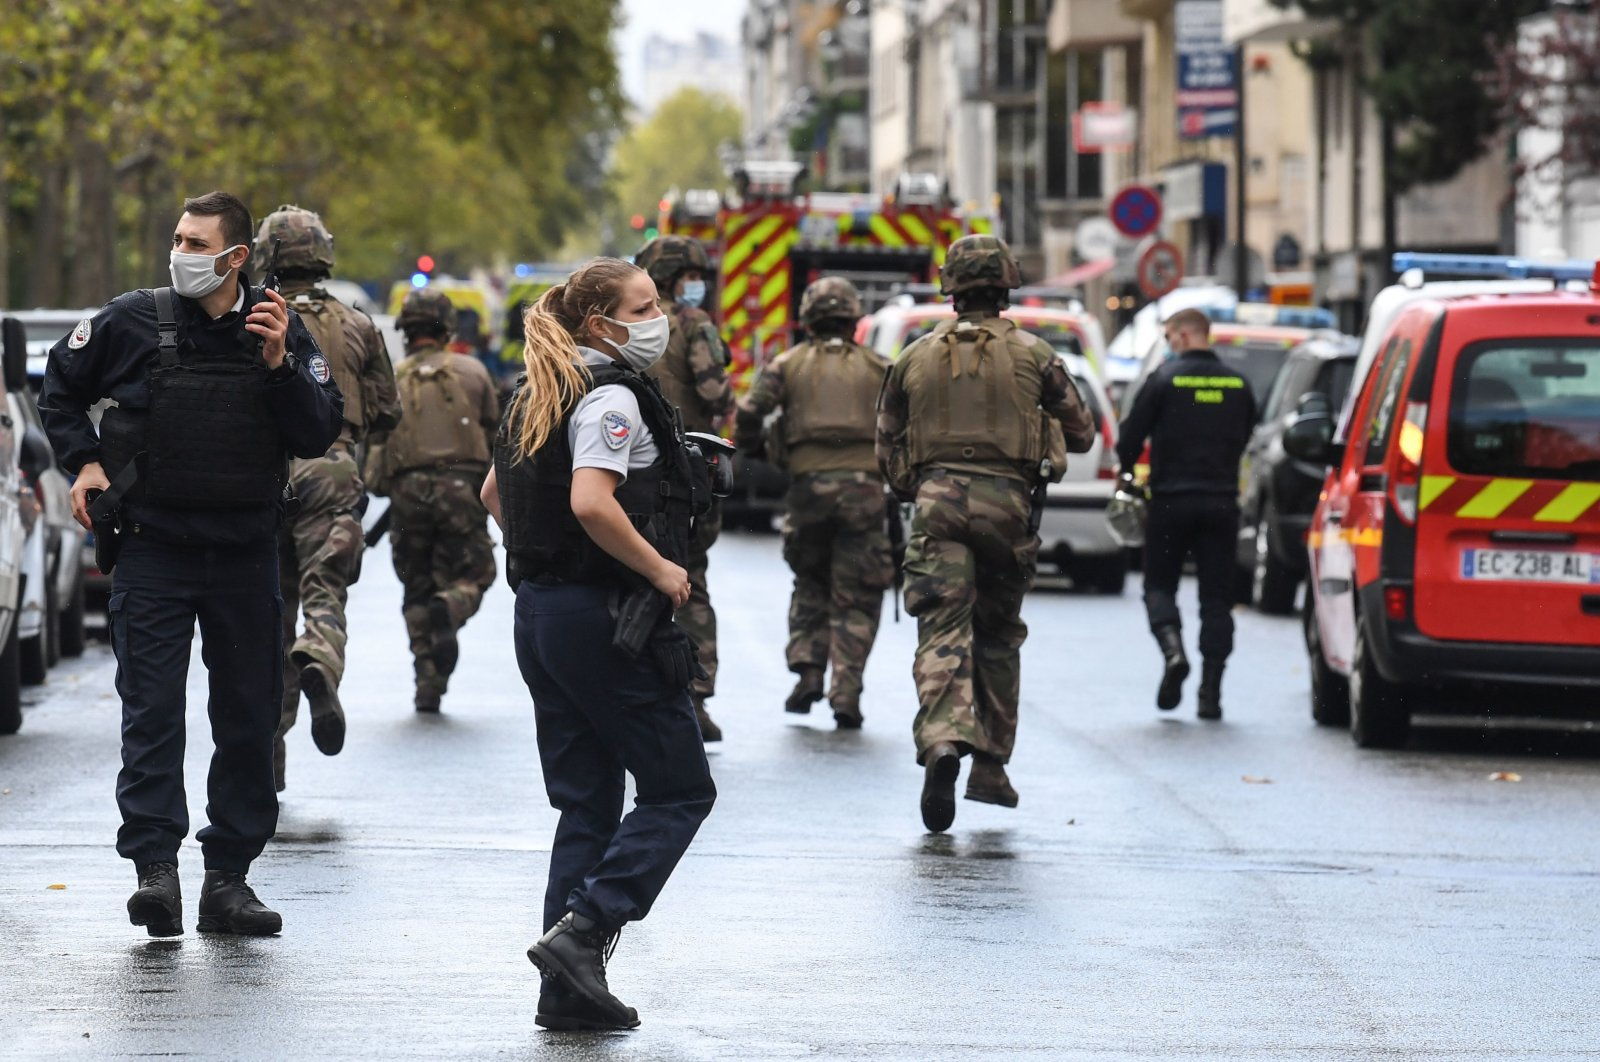 French army soldiers rush to the scene after several people were injured near the former offices of the French satirical magazine Charlie Hebdo following an alleged attack by a man wielding a knife in the capital Paris on September 25, 2020. (AFP Photo)